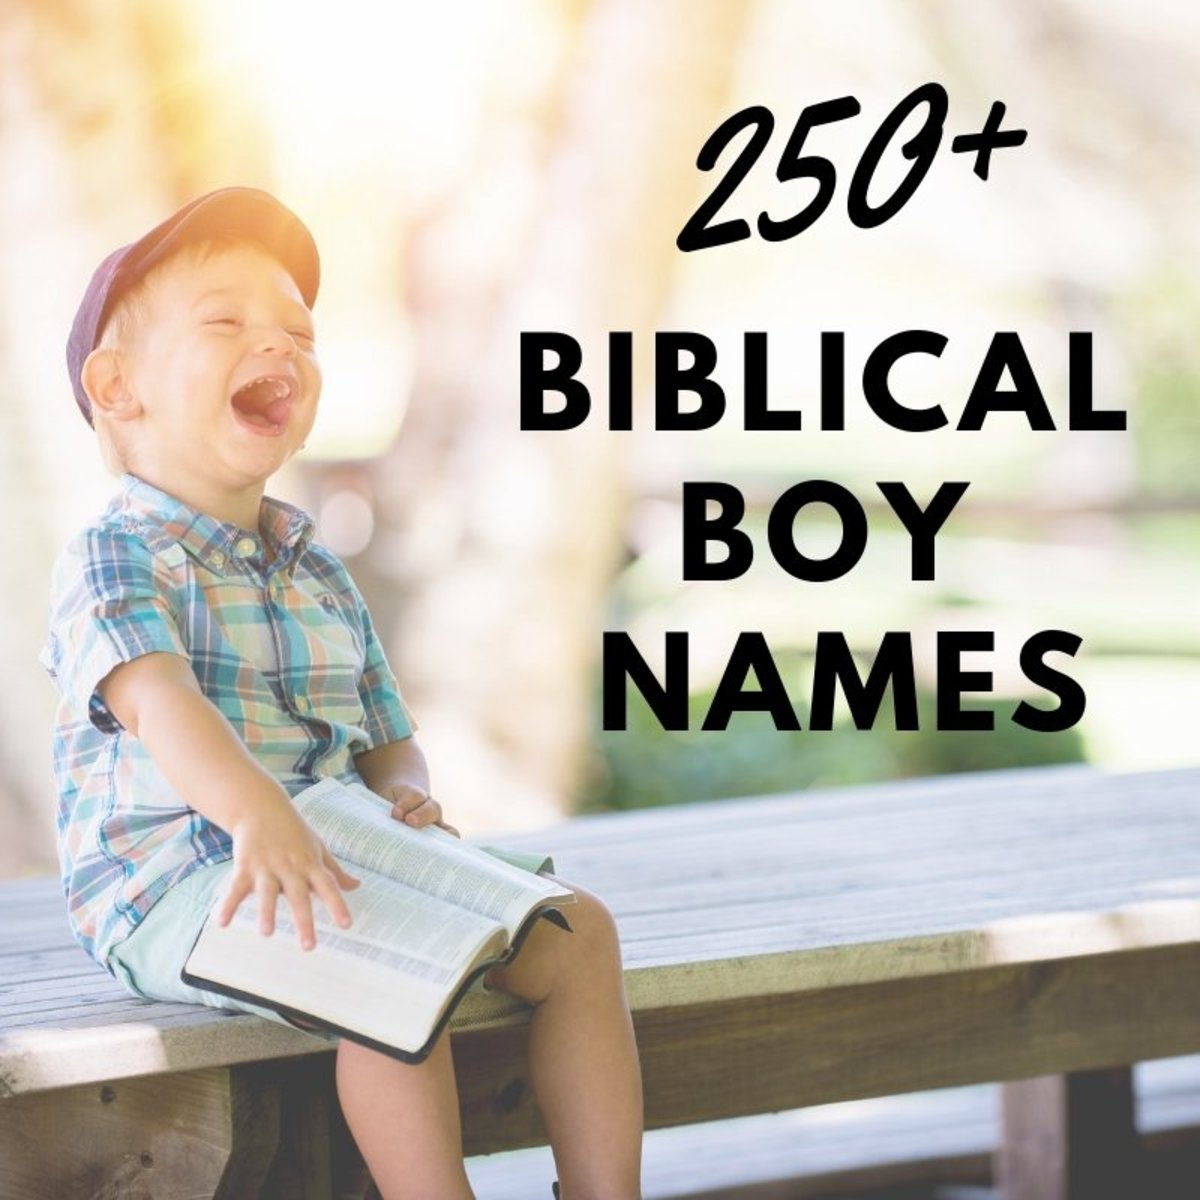 250+ Biblical Boy Names With Meanings